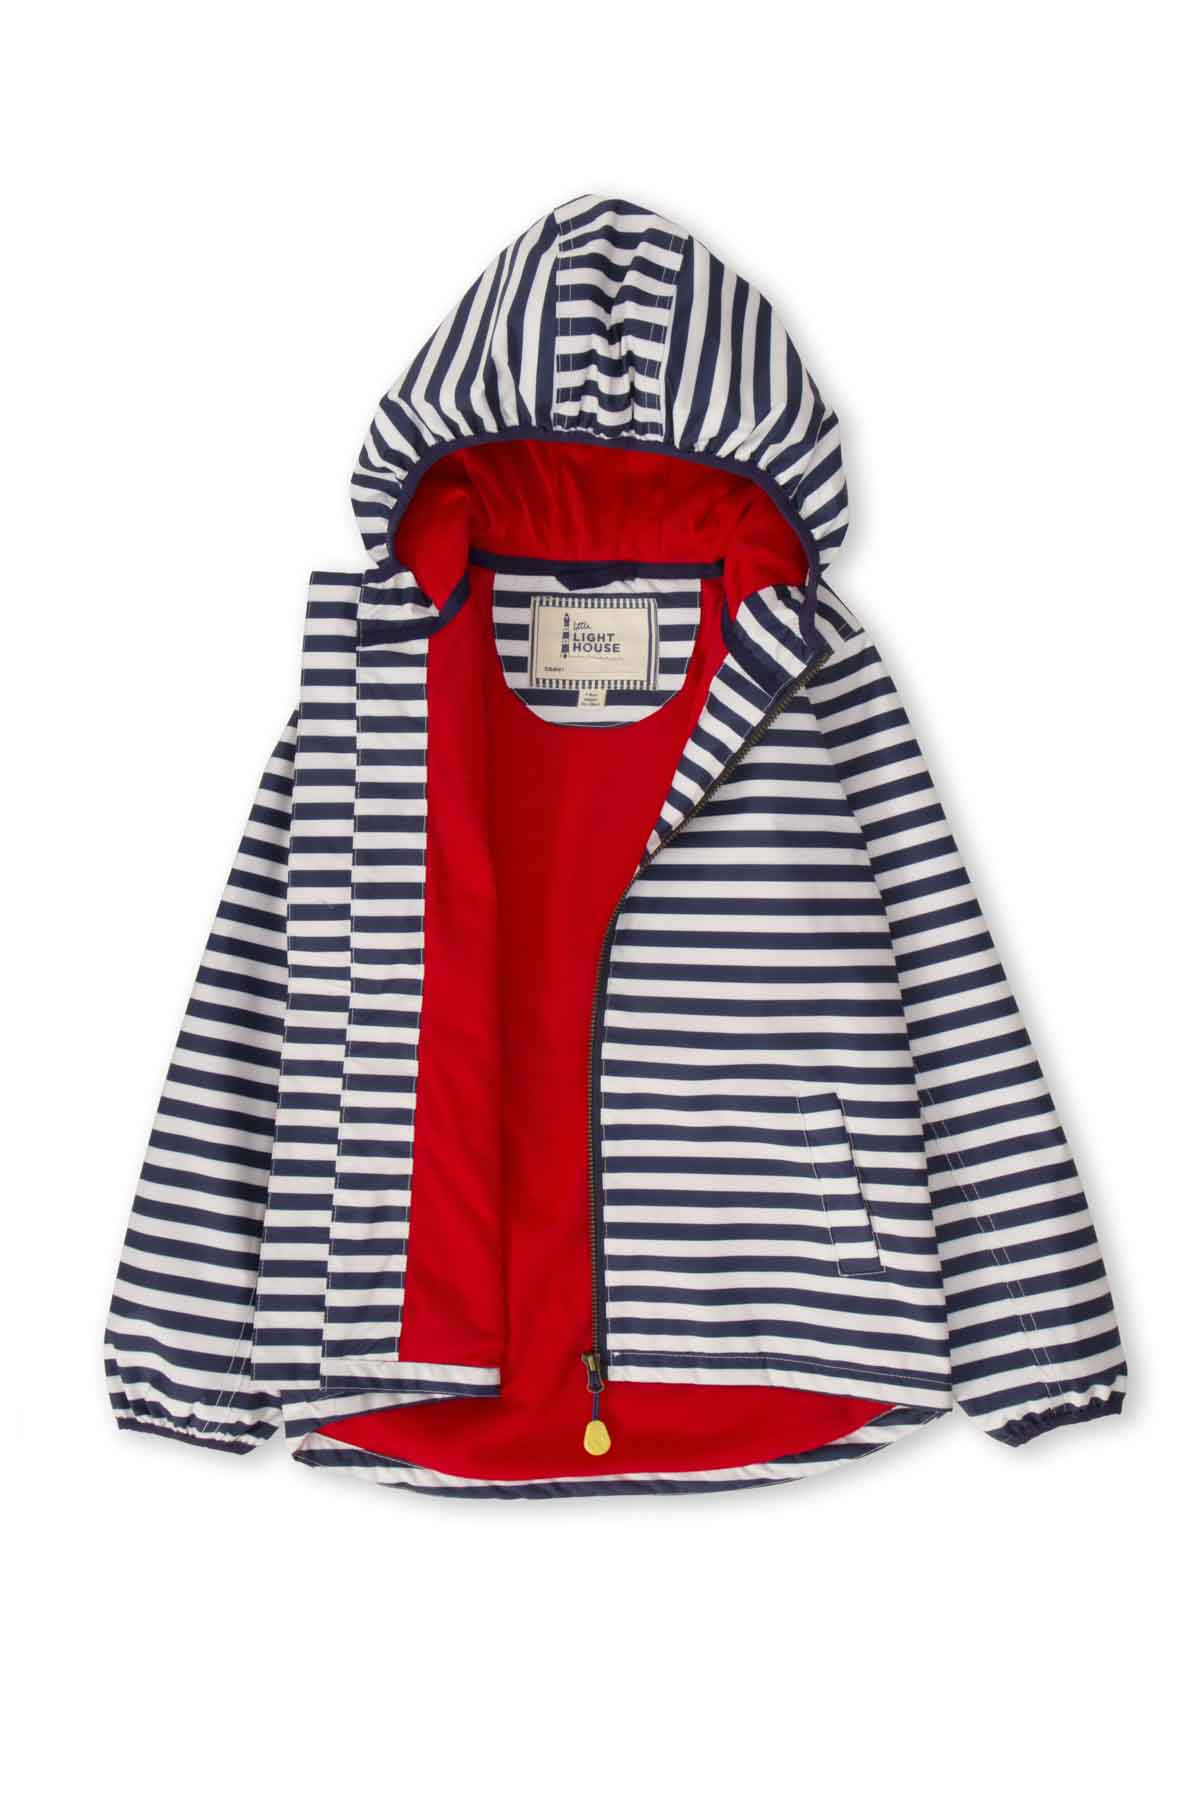 Lighthouse Atlantic Boy's Waterproof Jacket - Eclipse Stripe